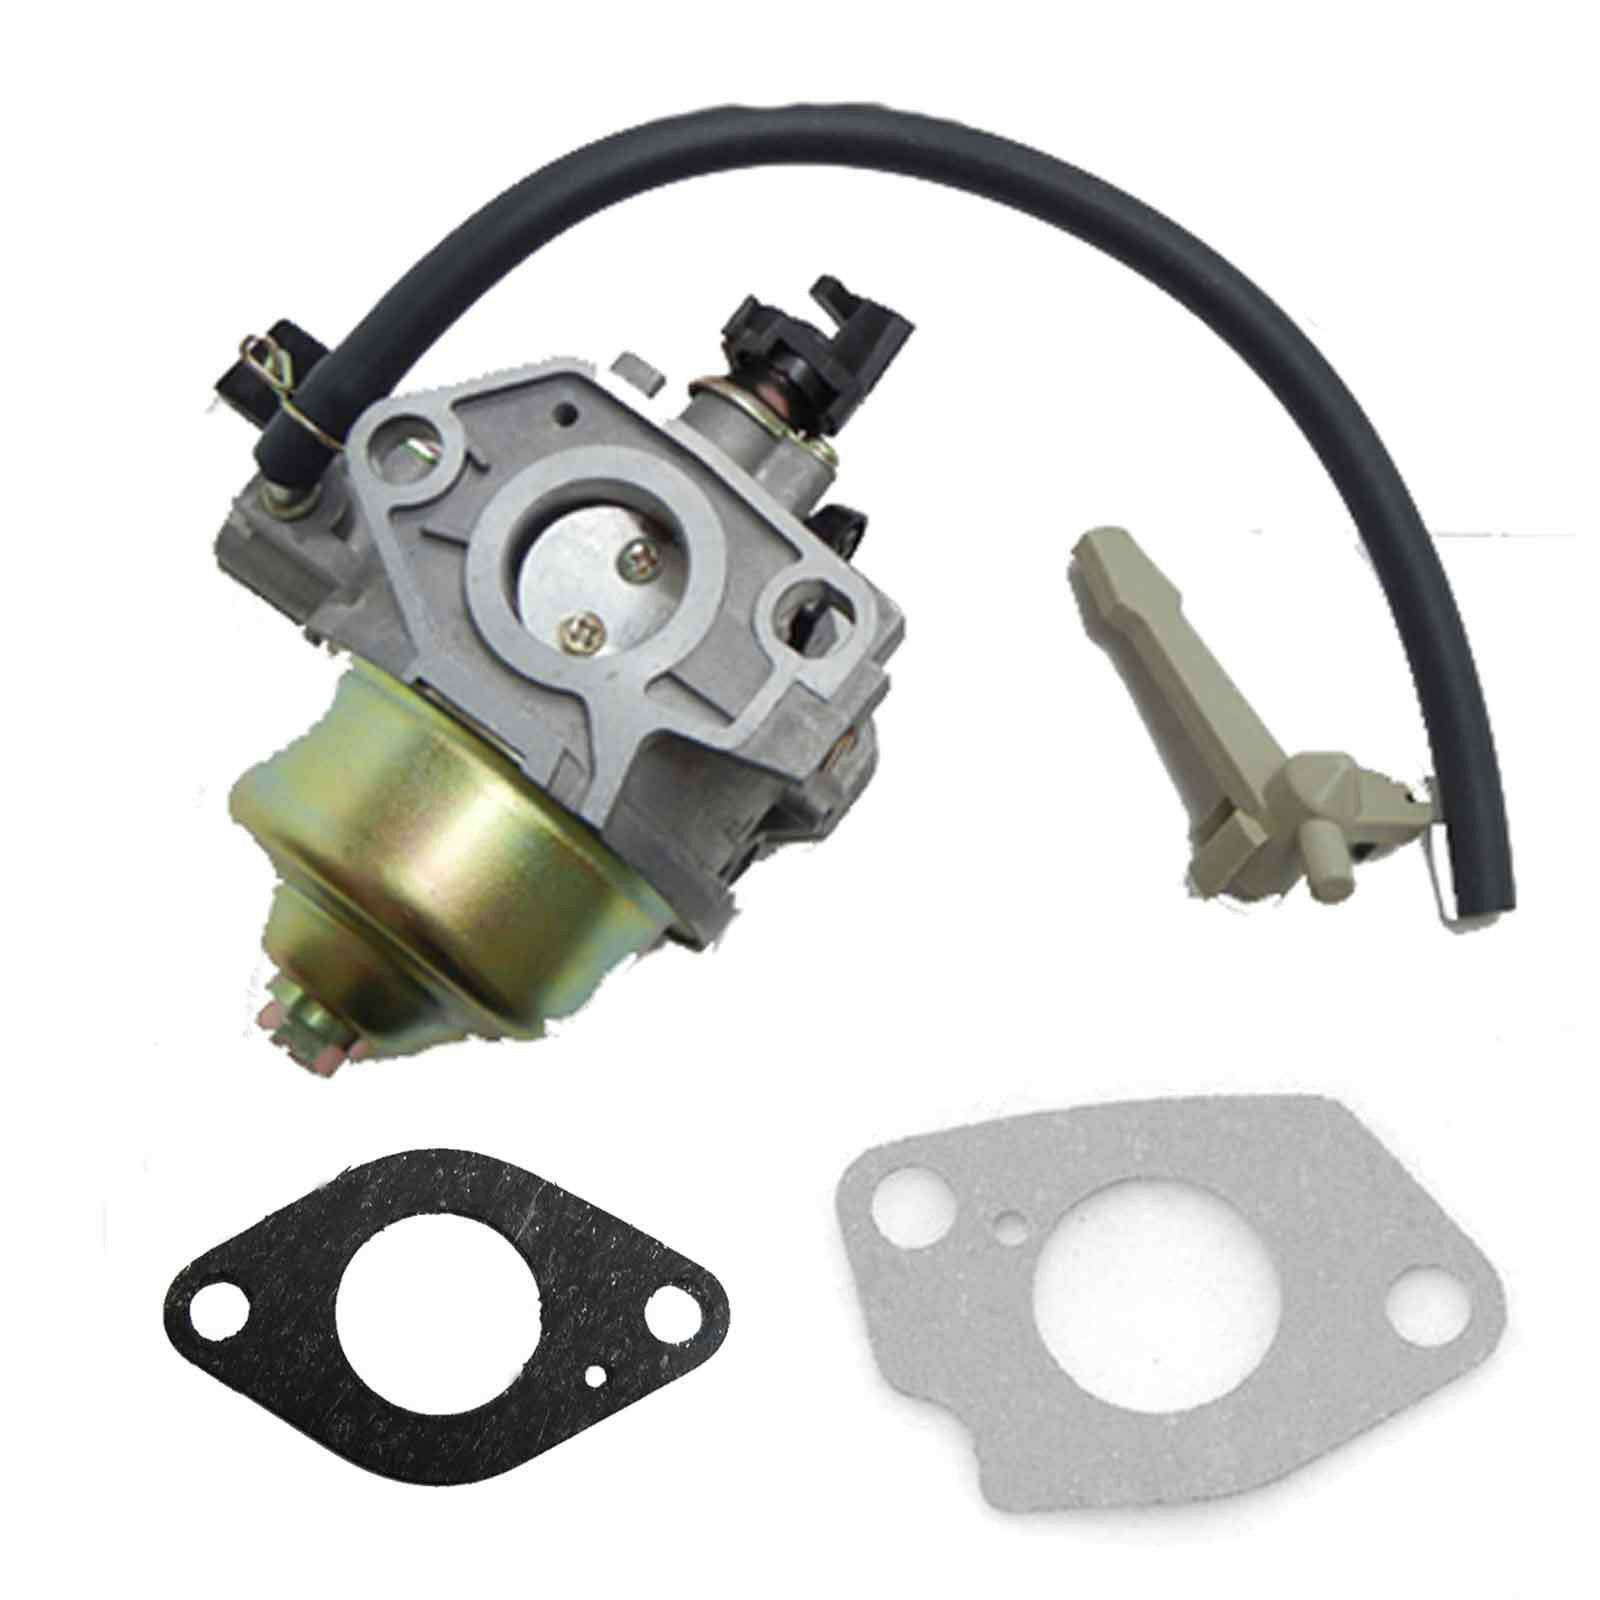 Replacement carburetor w/ gaskets Honda 16100-ZF2-V01 GX390